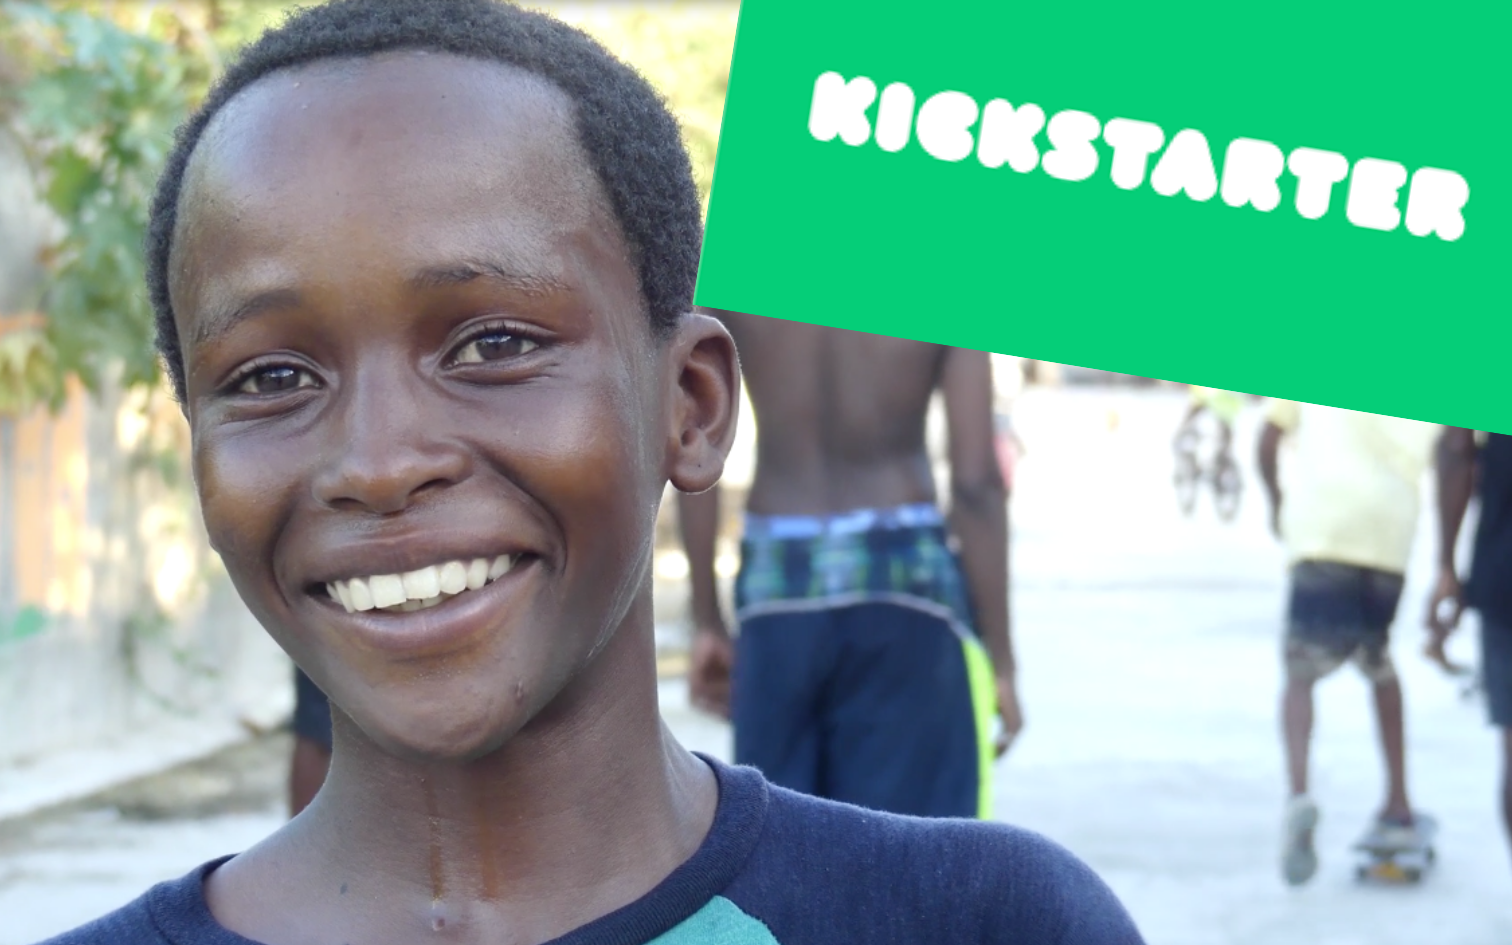 Support us now… - Help us raise $43,000 to build the Freedom Skatepark Youth Centre in Kingston, Jamaica, which will provide young people with a multi-purpose creative platform for education and youth entrepreneurship.